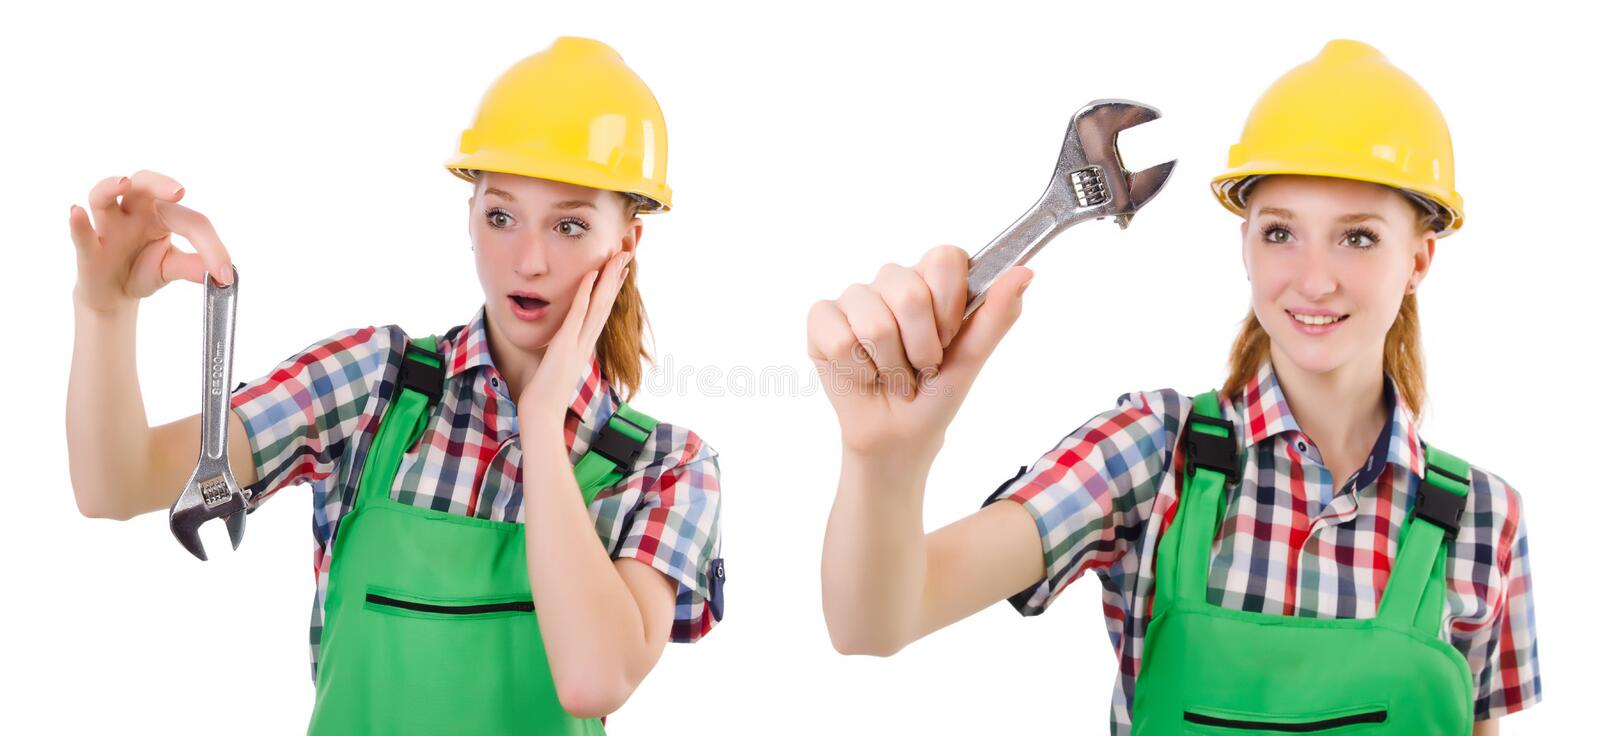 The constructon worker female with wrench isolated on white. Constructon worker female with wrench isolated on white royalty free stock image